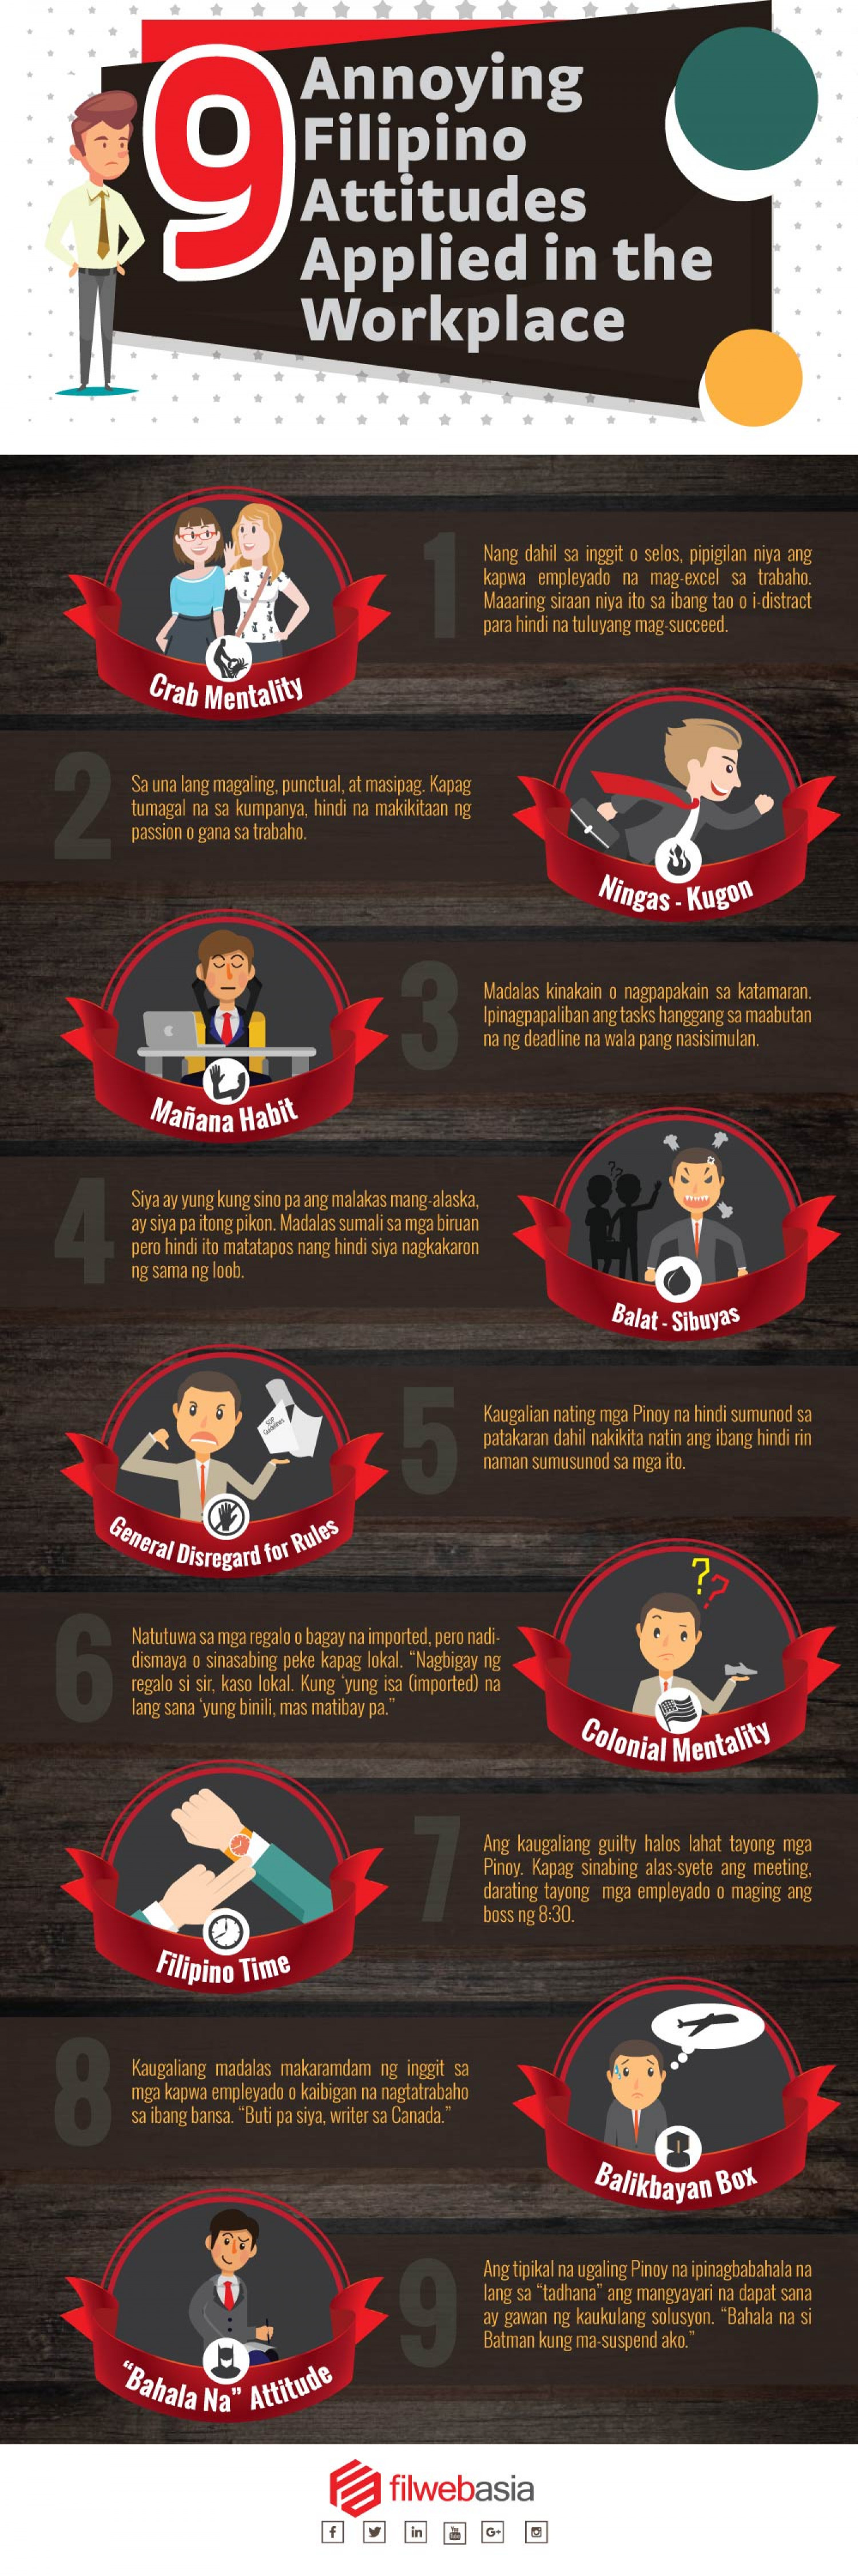 9 Annoying Filipino Attitudes Applied in the Workplace Infographic